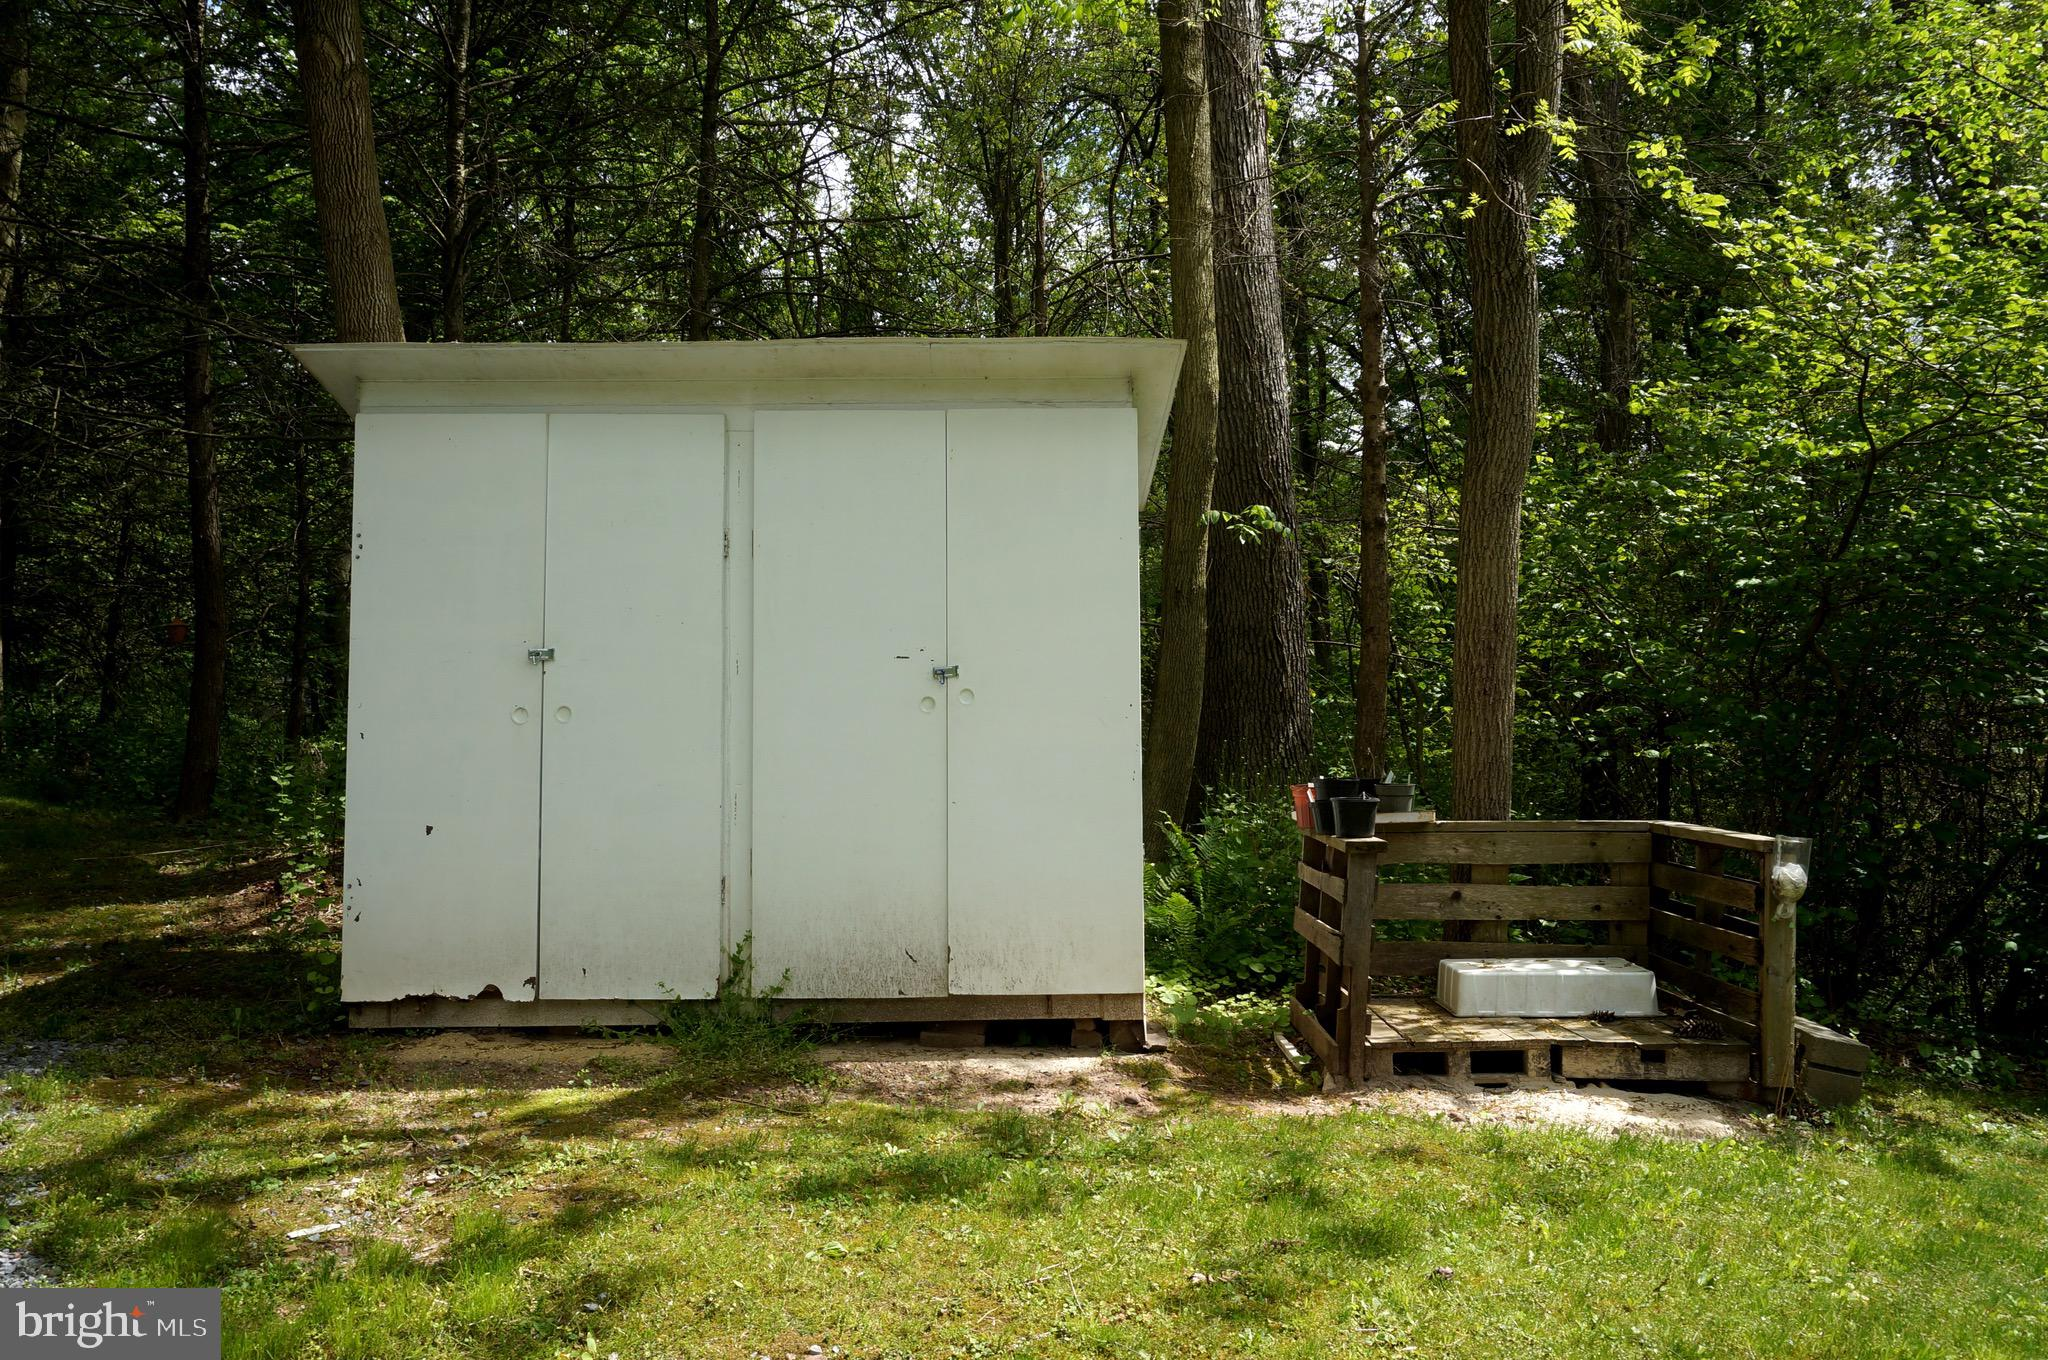 Storage Shed at Front Right Corner of Property